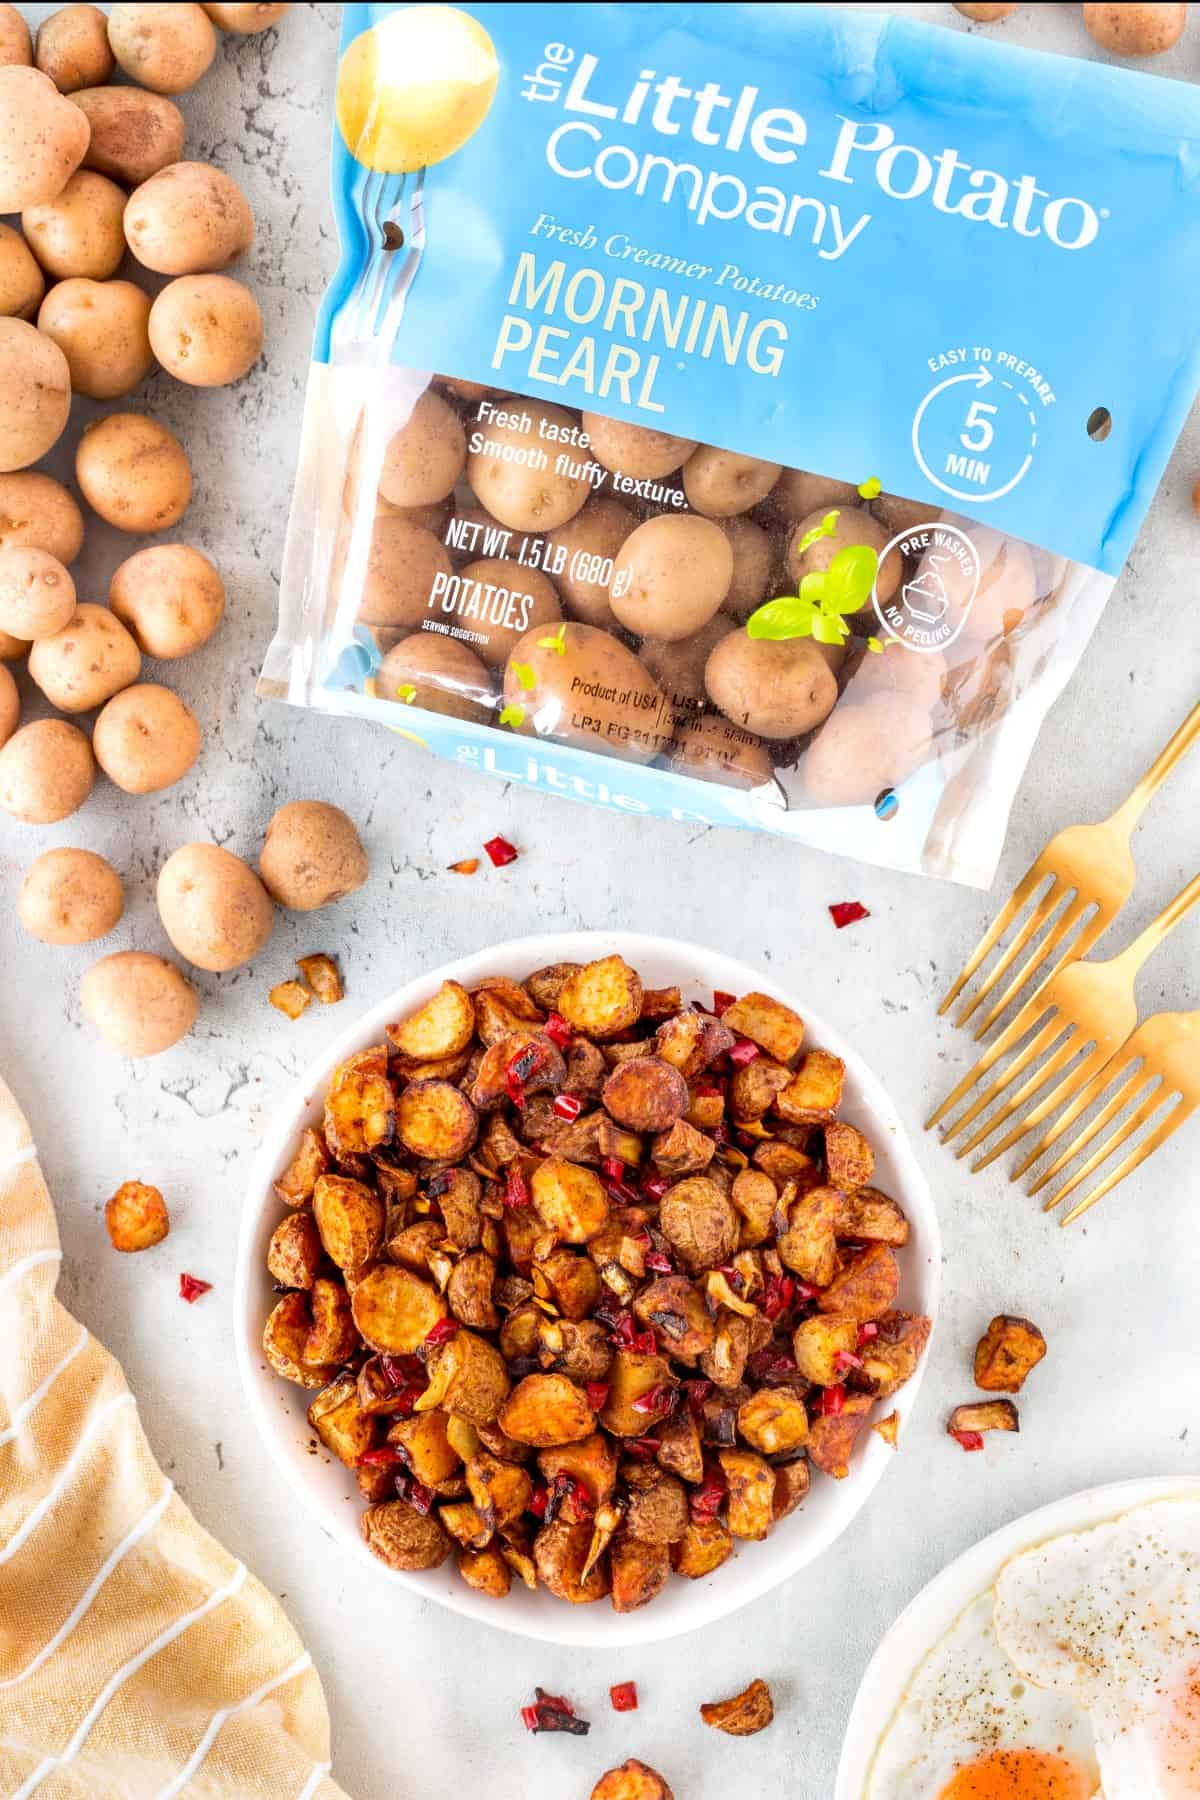 Overhead shot of Air Fryer Home Fries on a plate with packaging from Little Potato Company